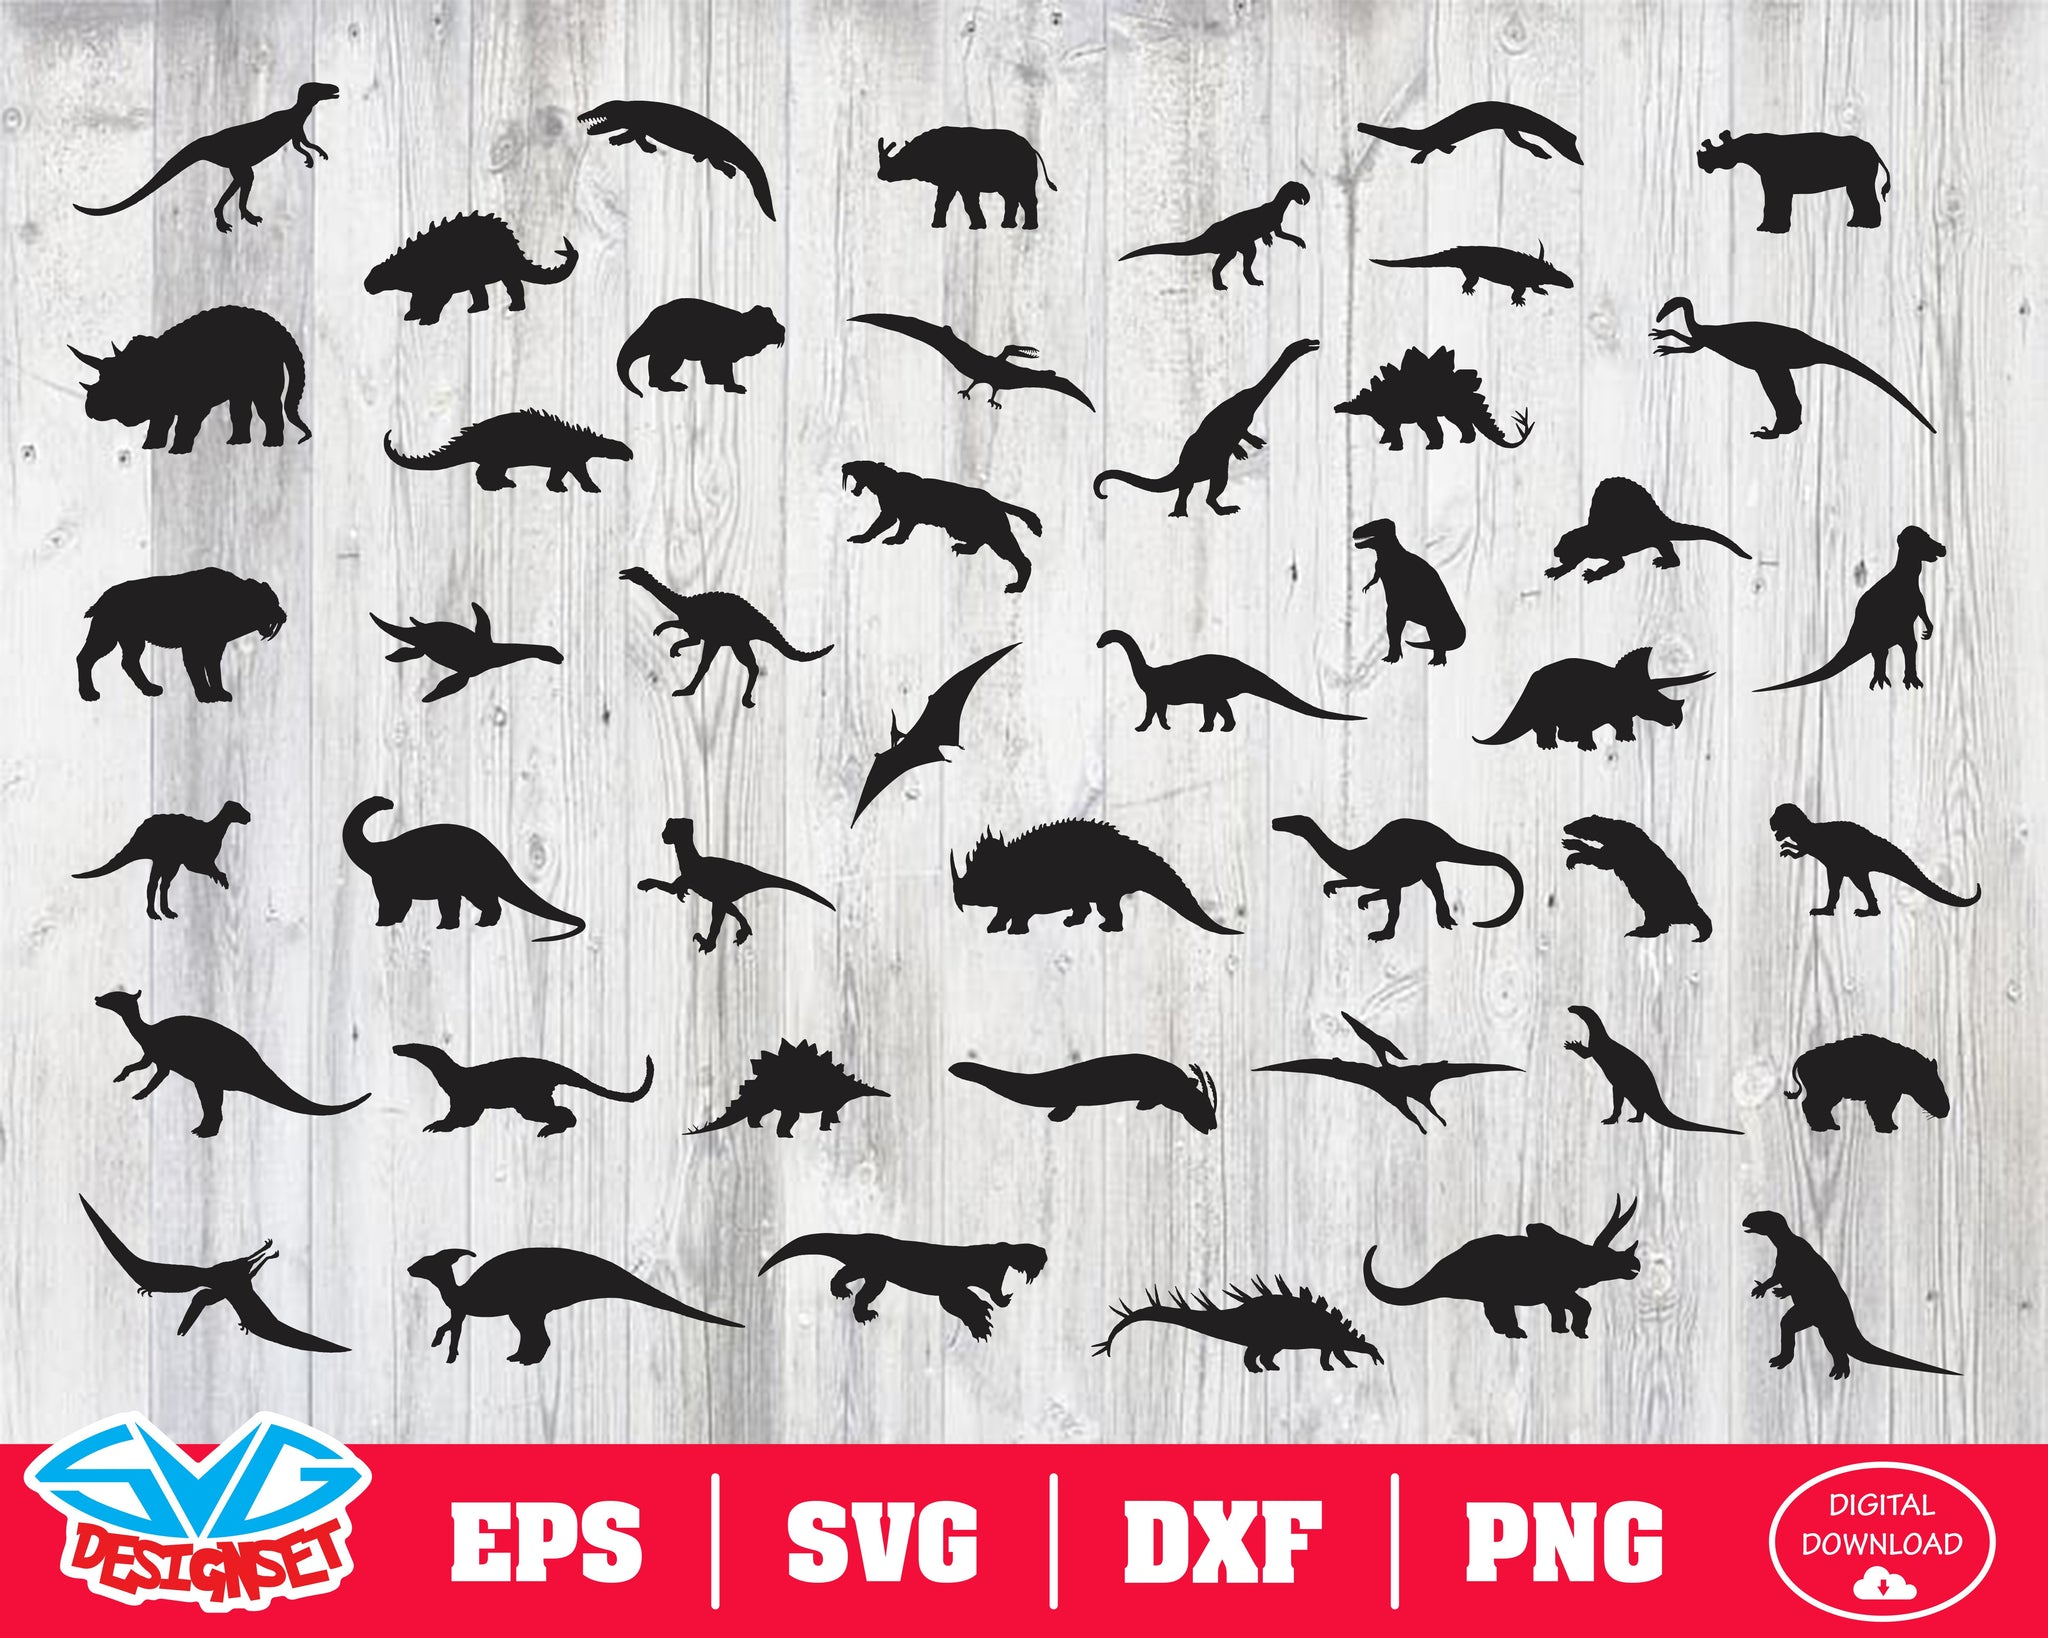 Dinosaur Svg, Dxf, Eps, Png, Clipart, Silhouette and Cutfiles #2